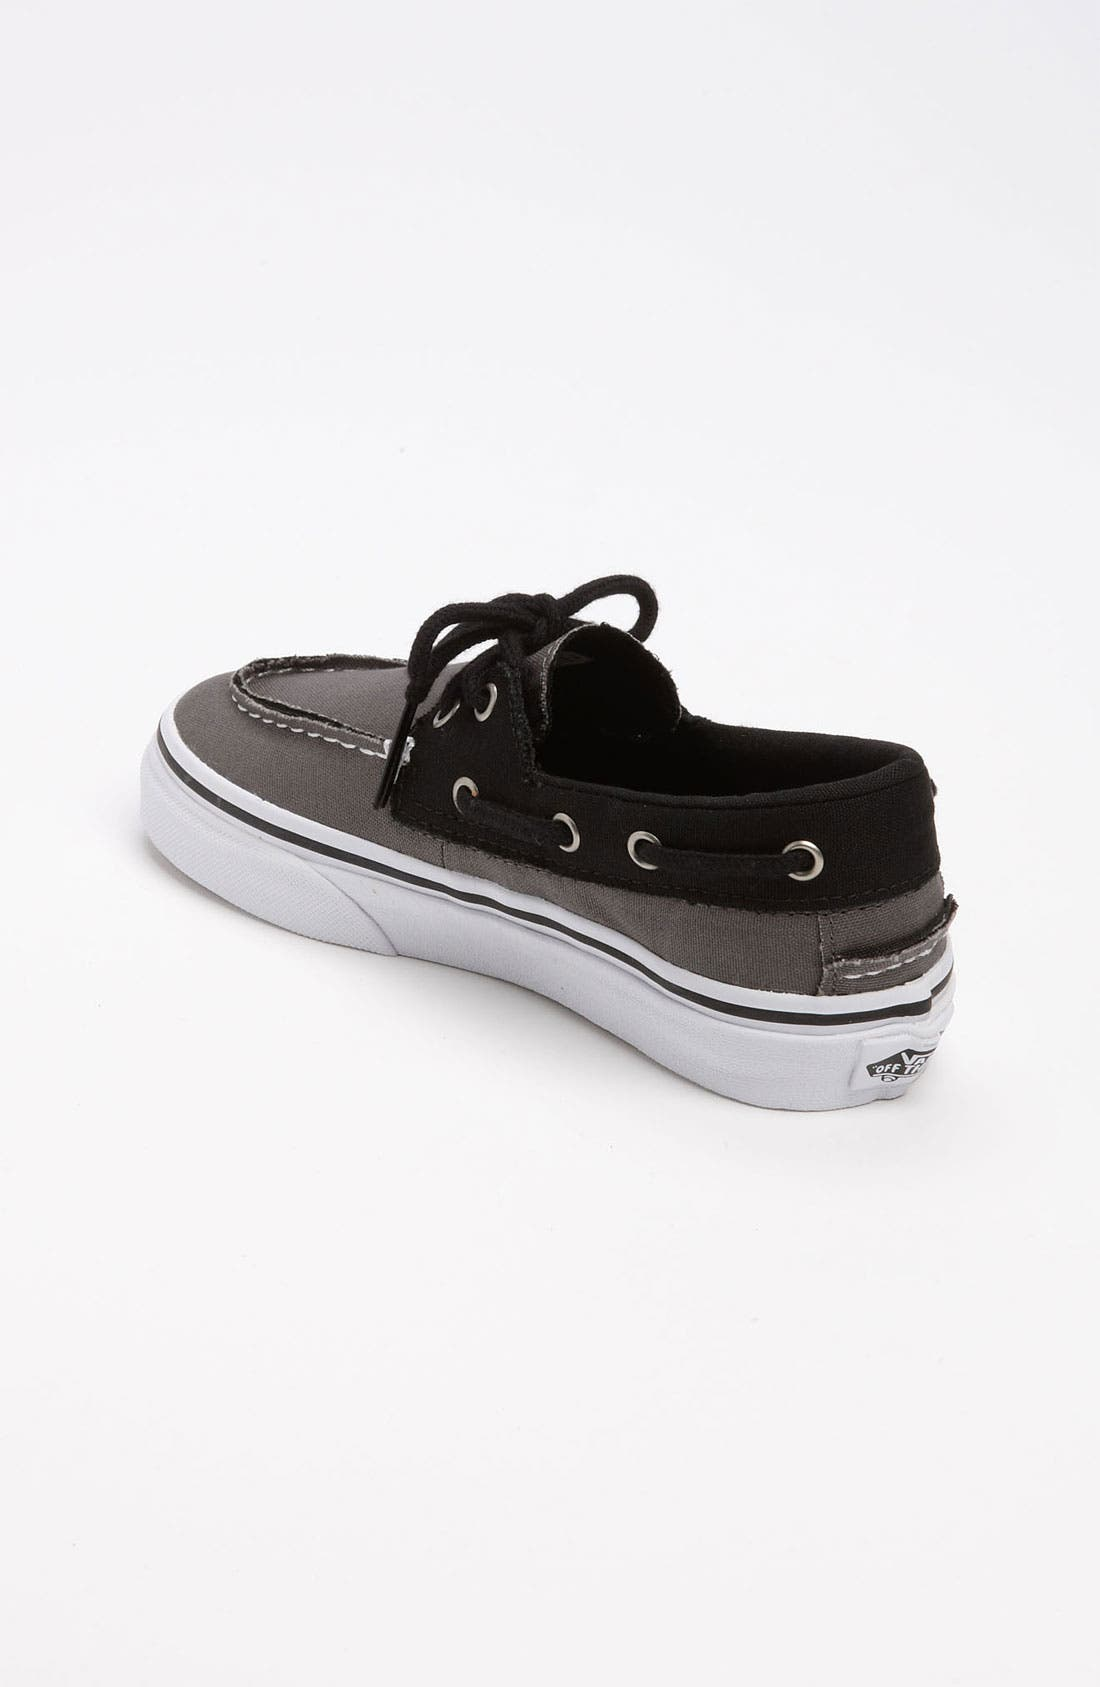 Alternate Image 2  - Vans 'Zapato del Barco' Boat Shoe (Baby, Walker, Toddler, Little Kid & Big Kid)